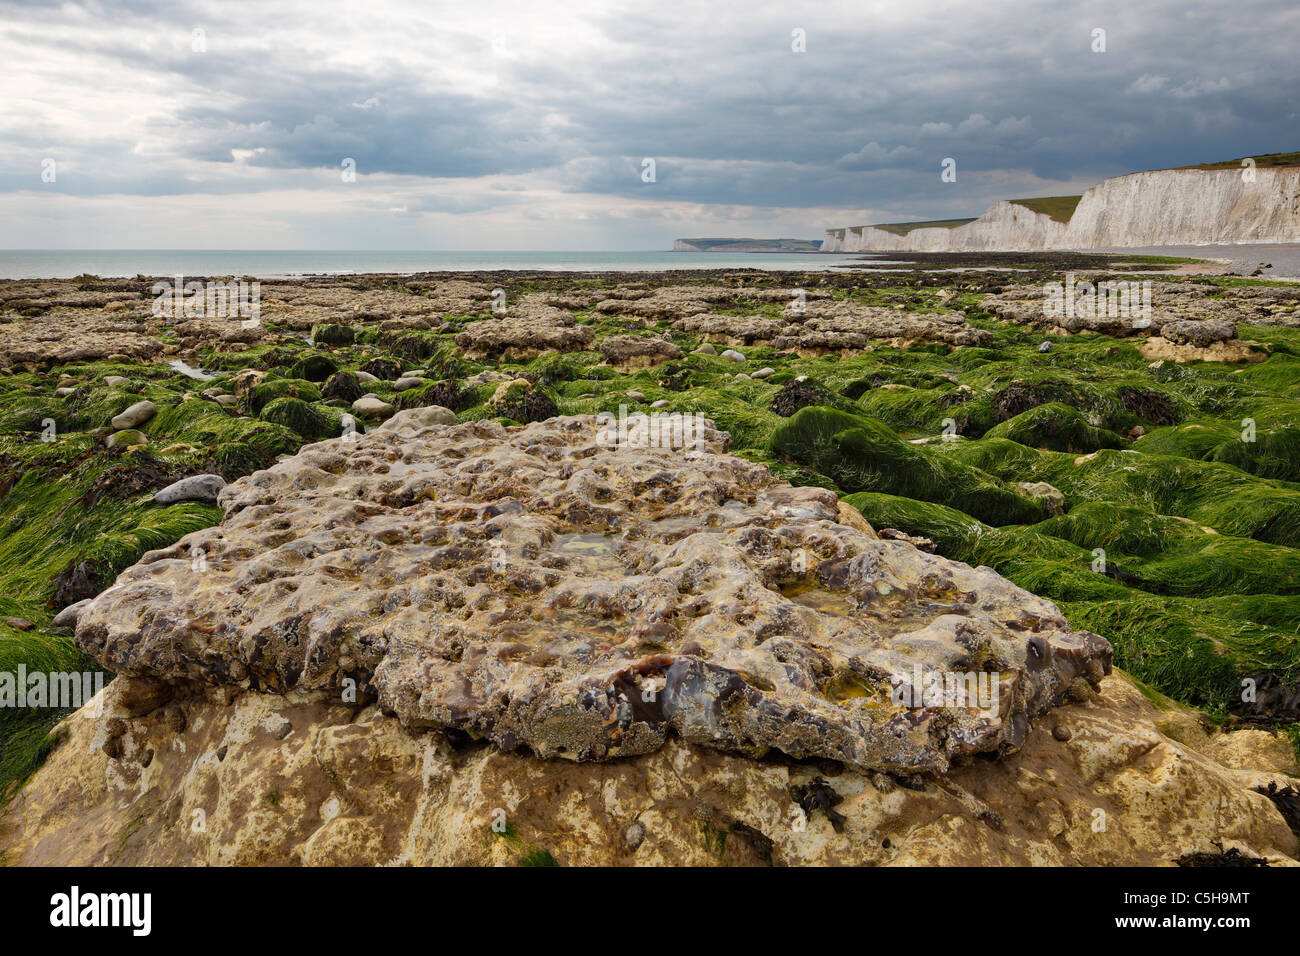 Birling Gap at low tide showing a layer of hard flint stone with the softer eroded chalk layer underneath. - Stock Image